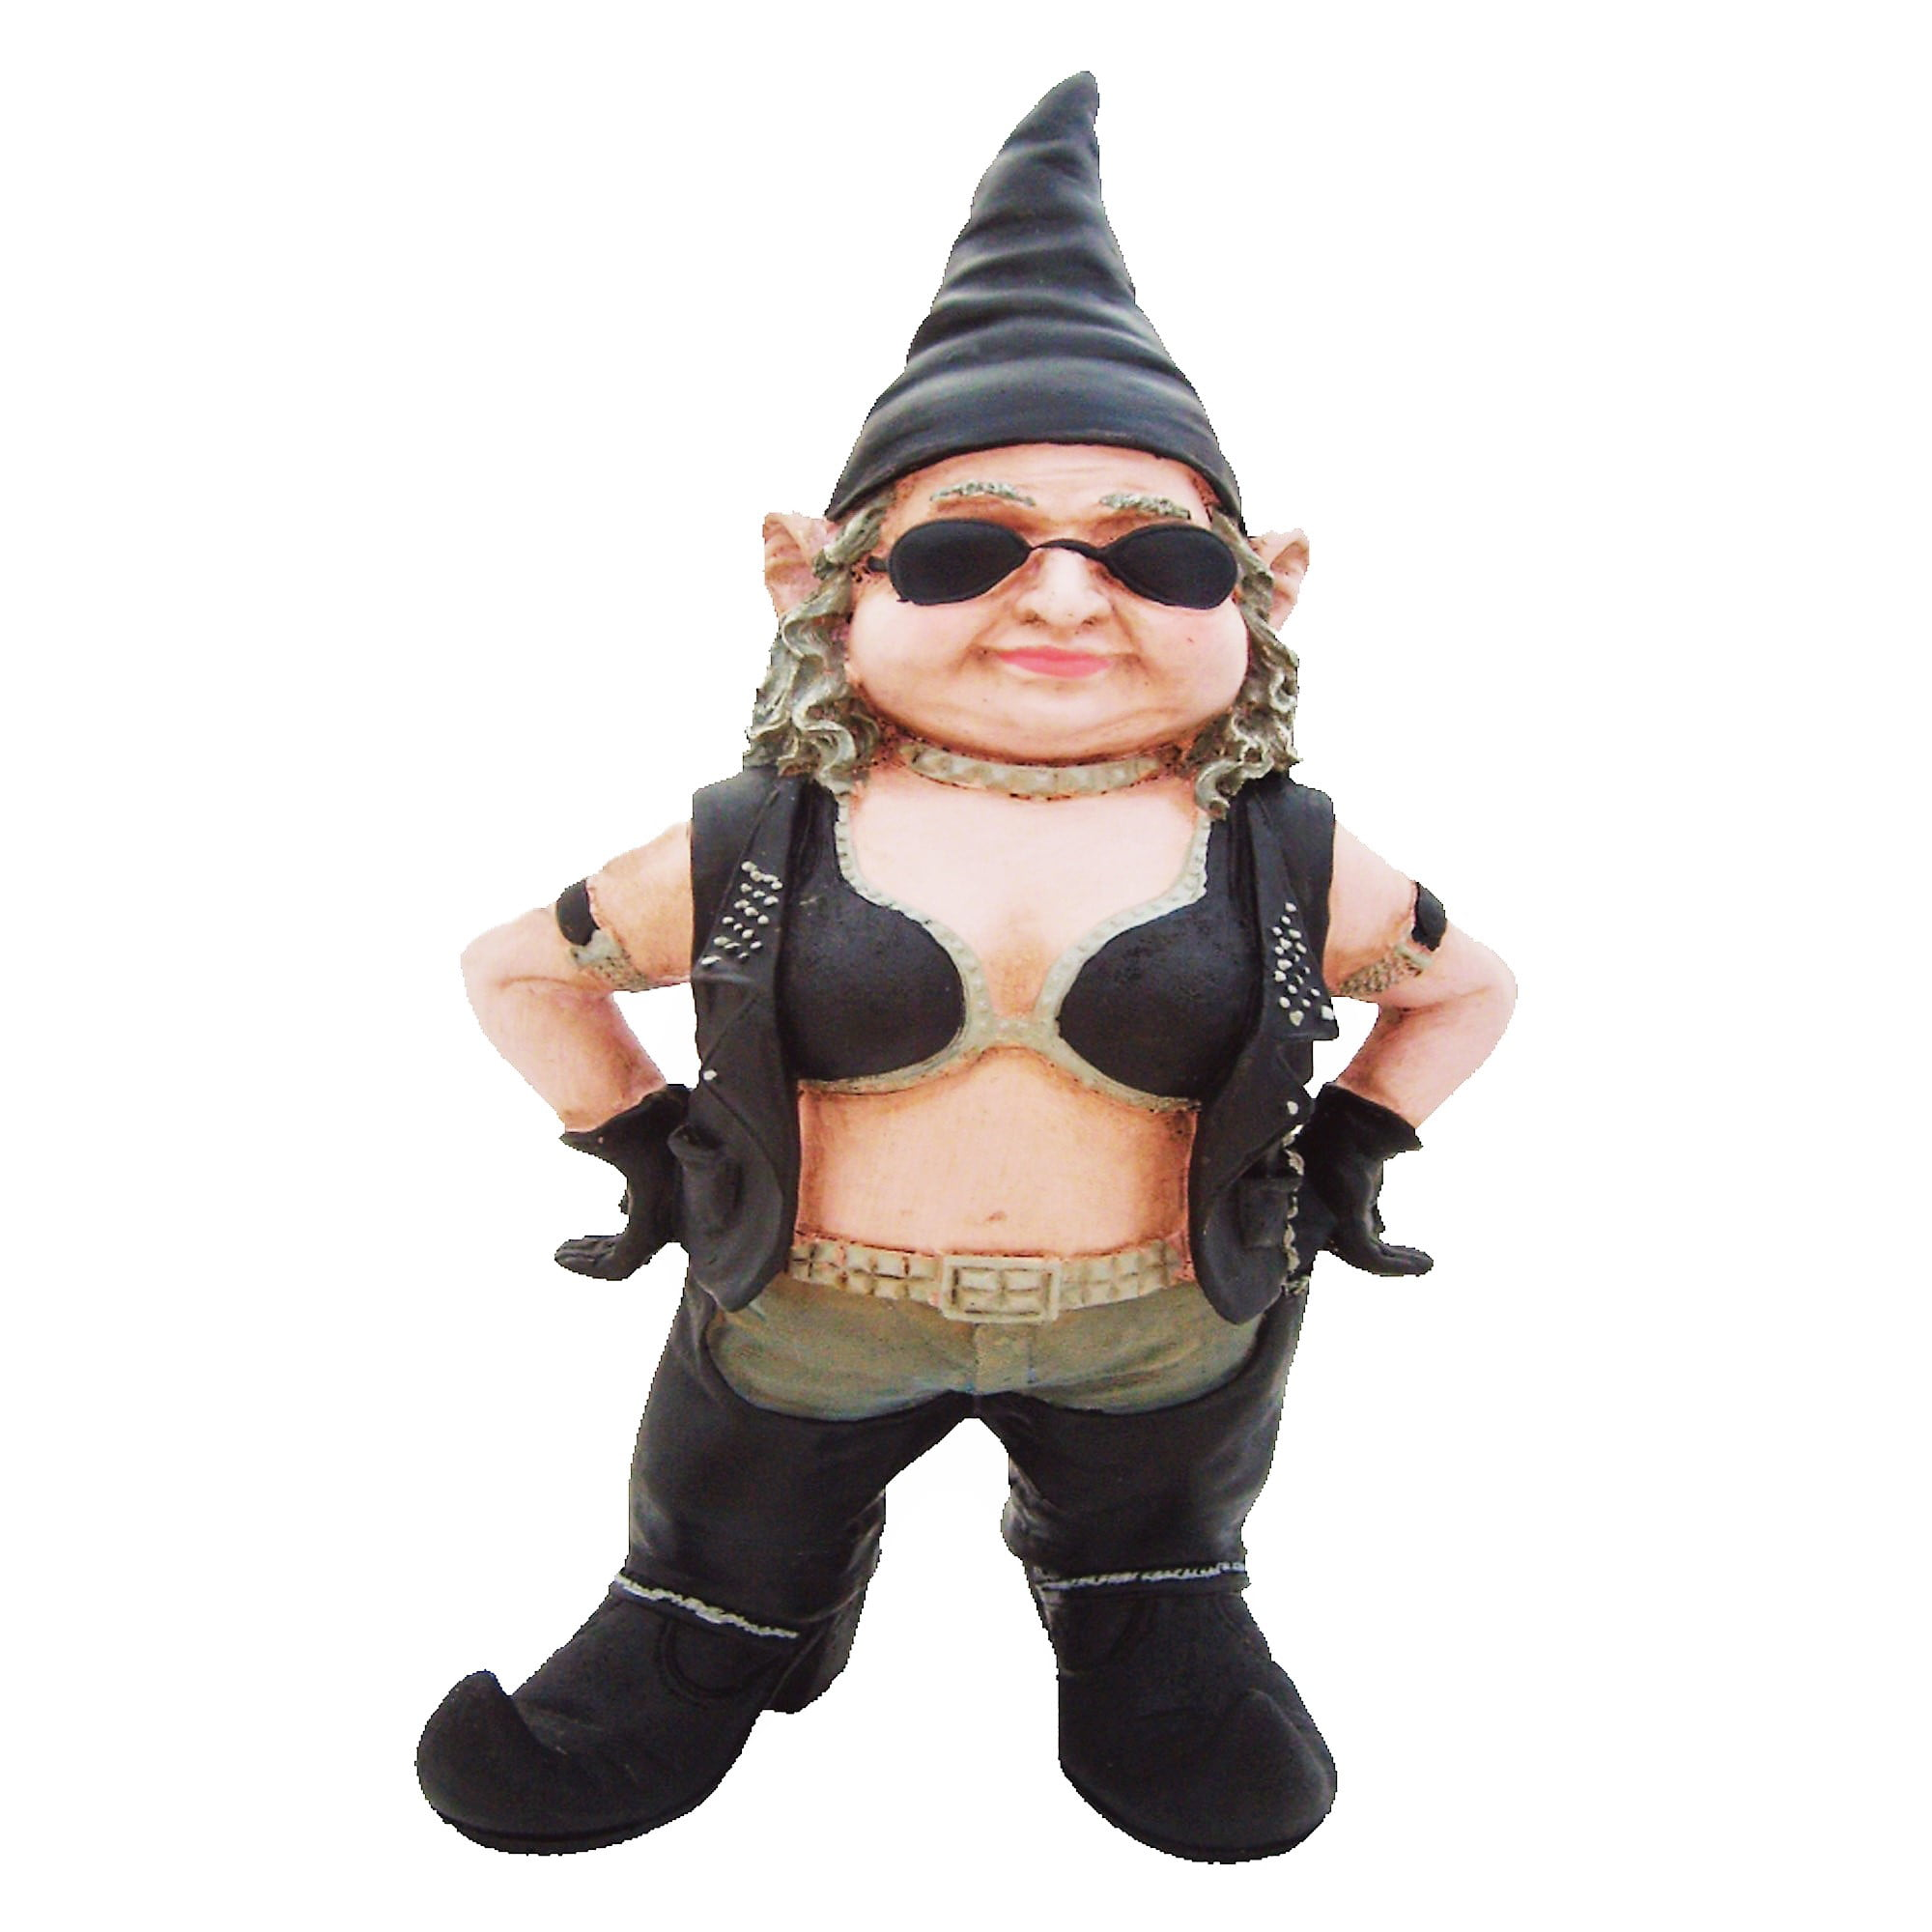 "Nowaday Gnomes ""Biker Babe"" the Biker Gnome in Leather Motorcycle Riding Gear... by GSI Homestyles"